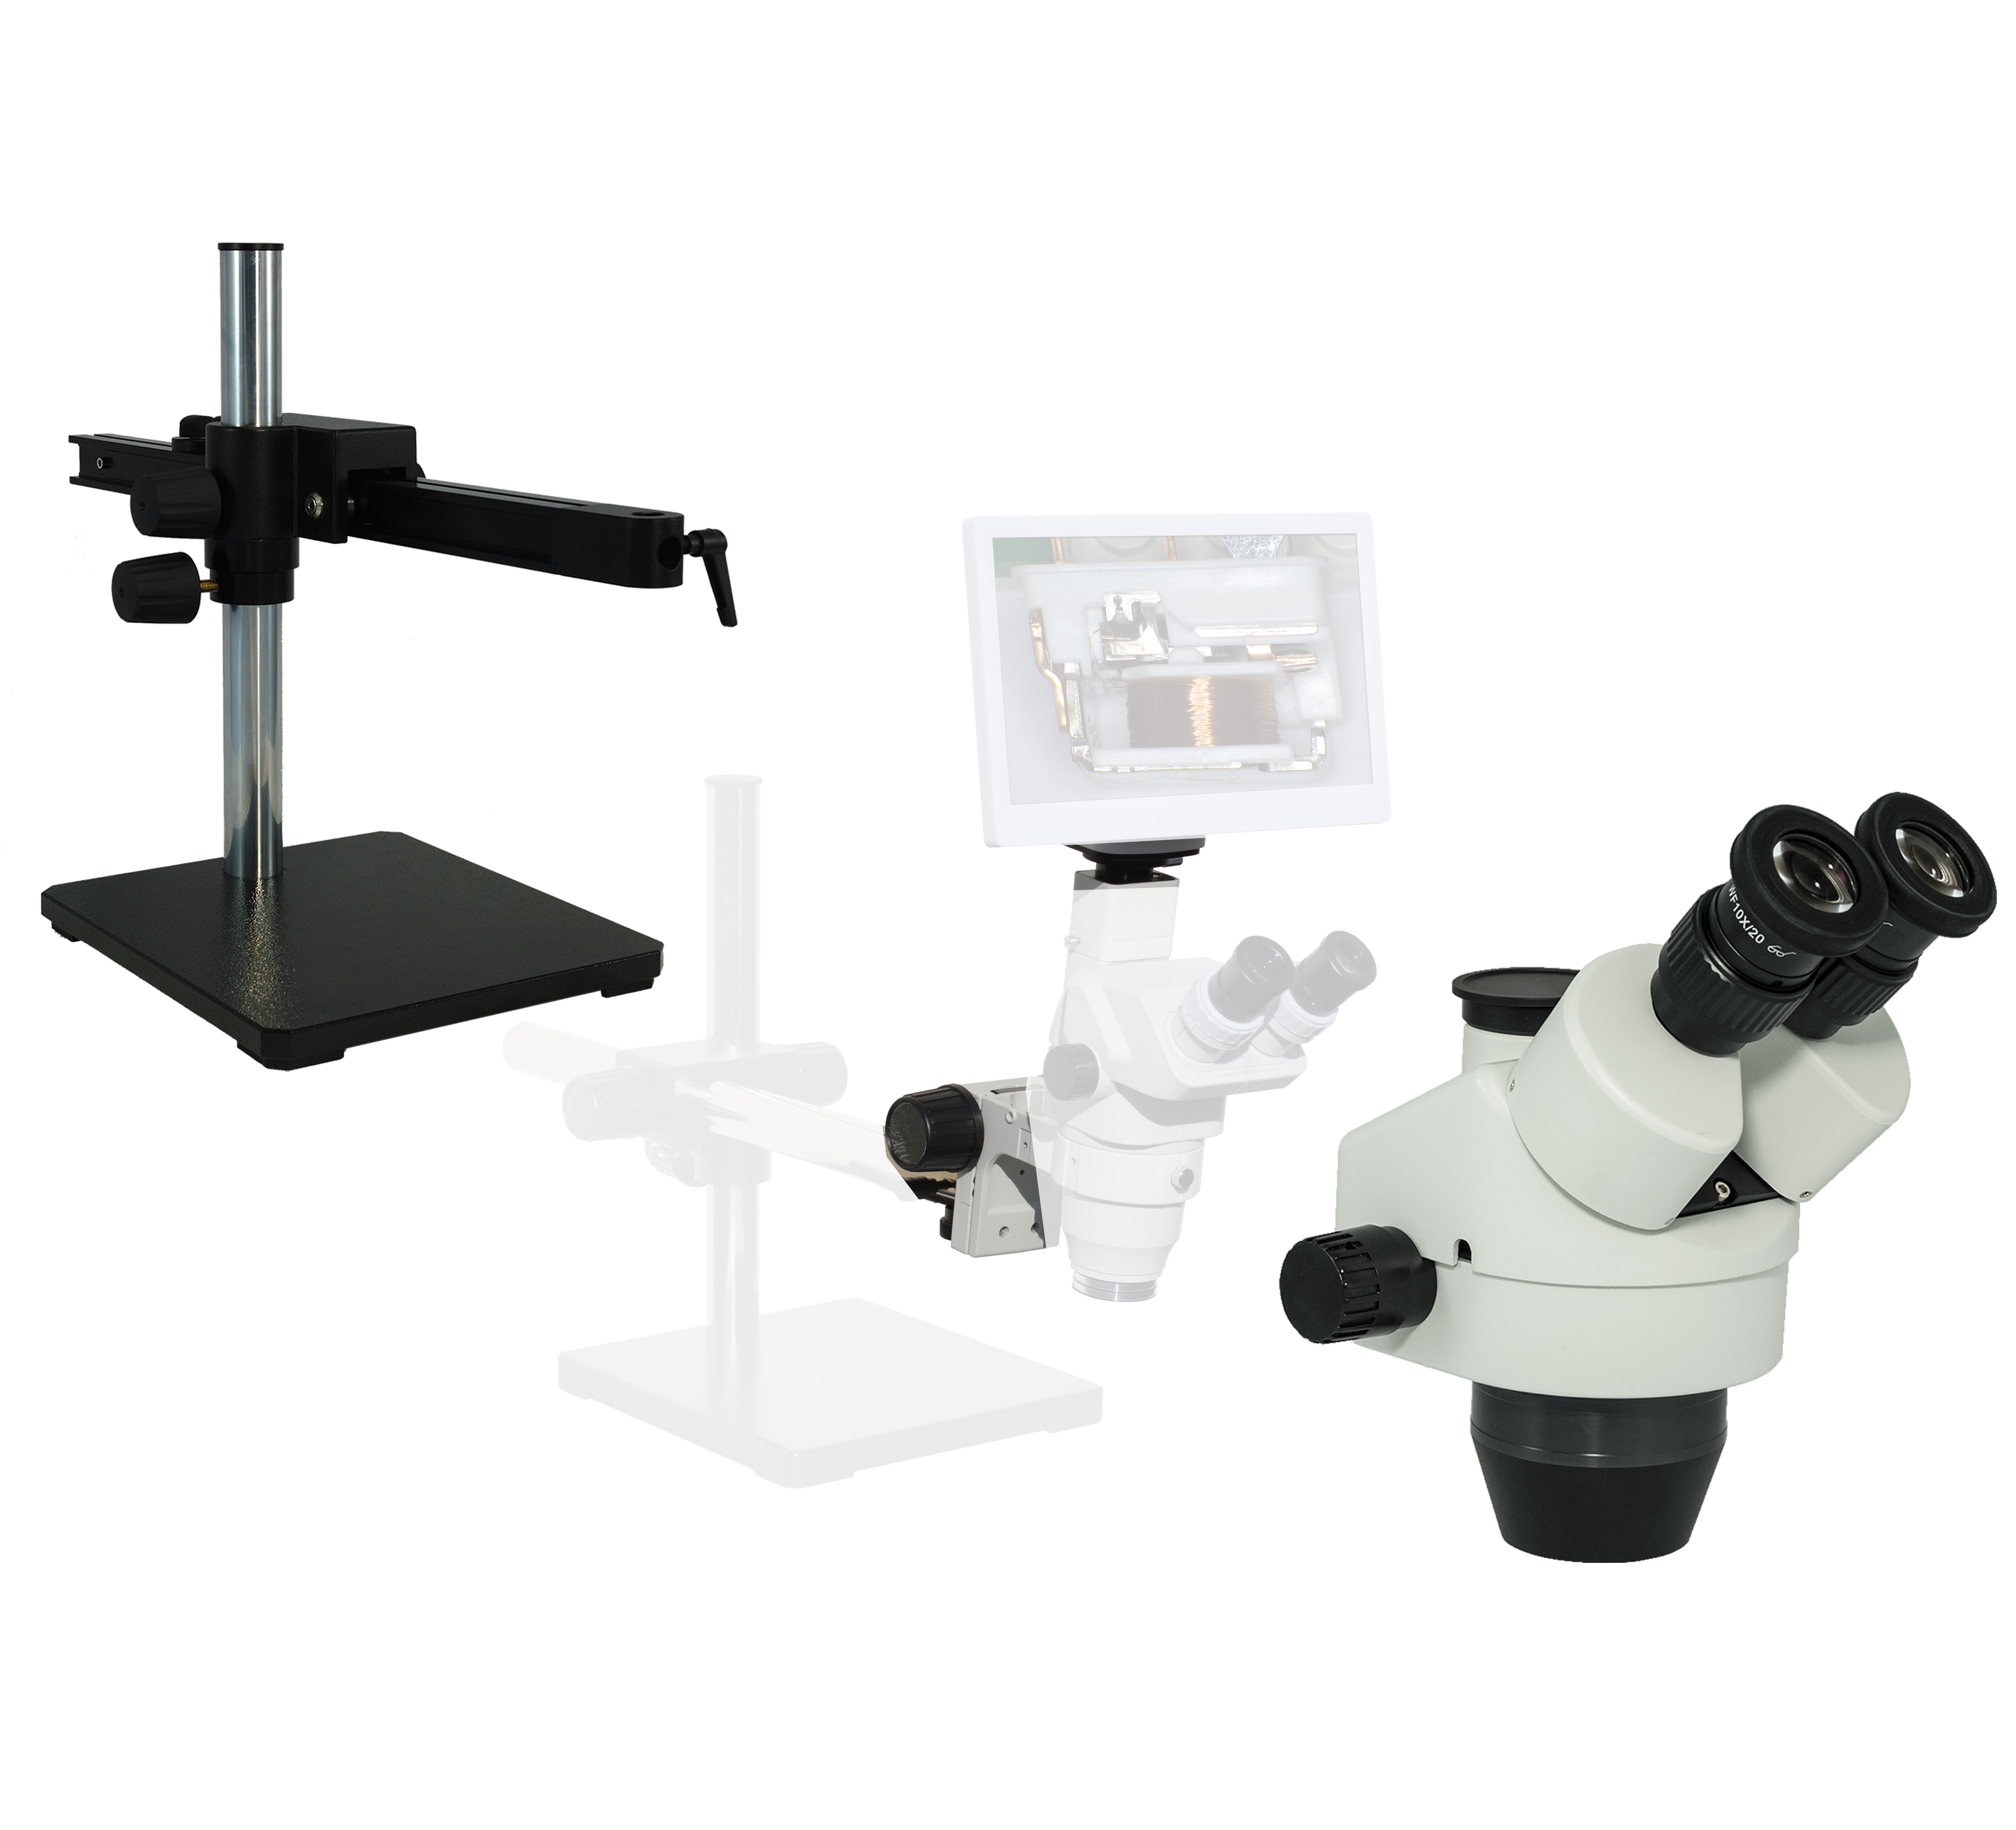 eTR500 Trinocular Digital Microscope series 3.5x-270x [Starting at $573]